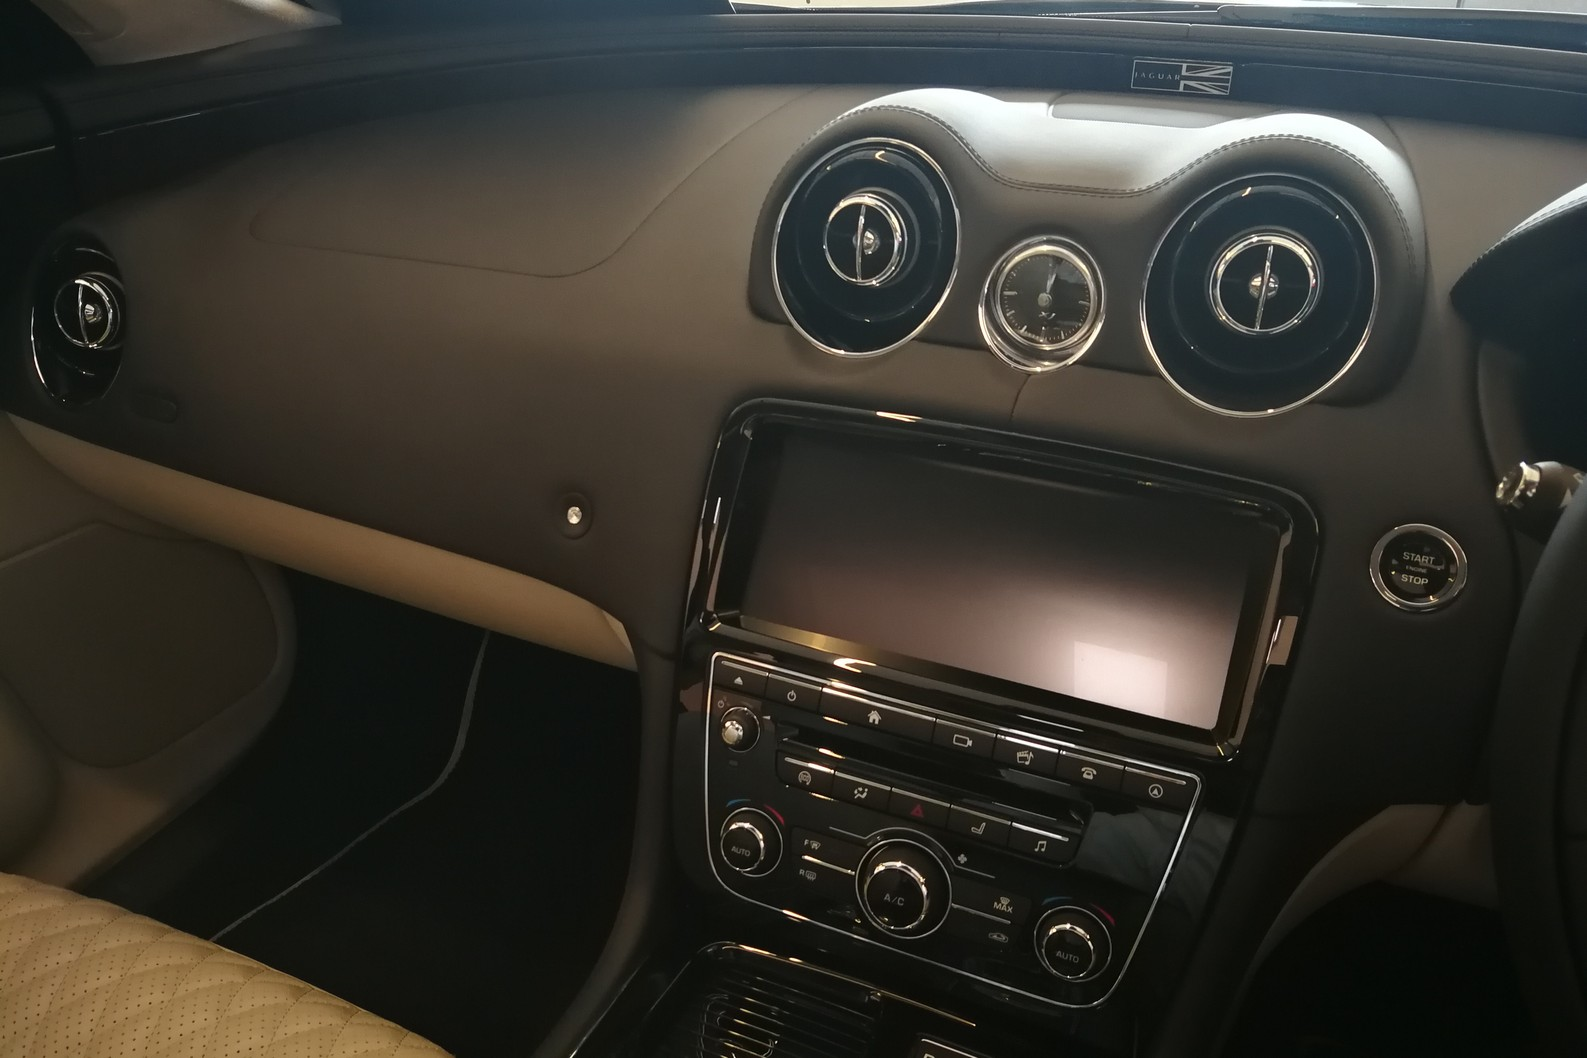 Jaguar XJ 3.0d V6 XJ50 LWB - Delivery Mileage - Surround Camera - Heated and cooled S image 9